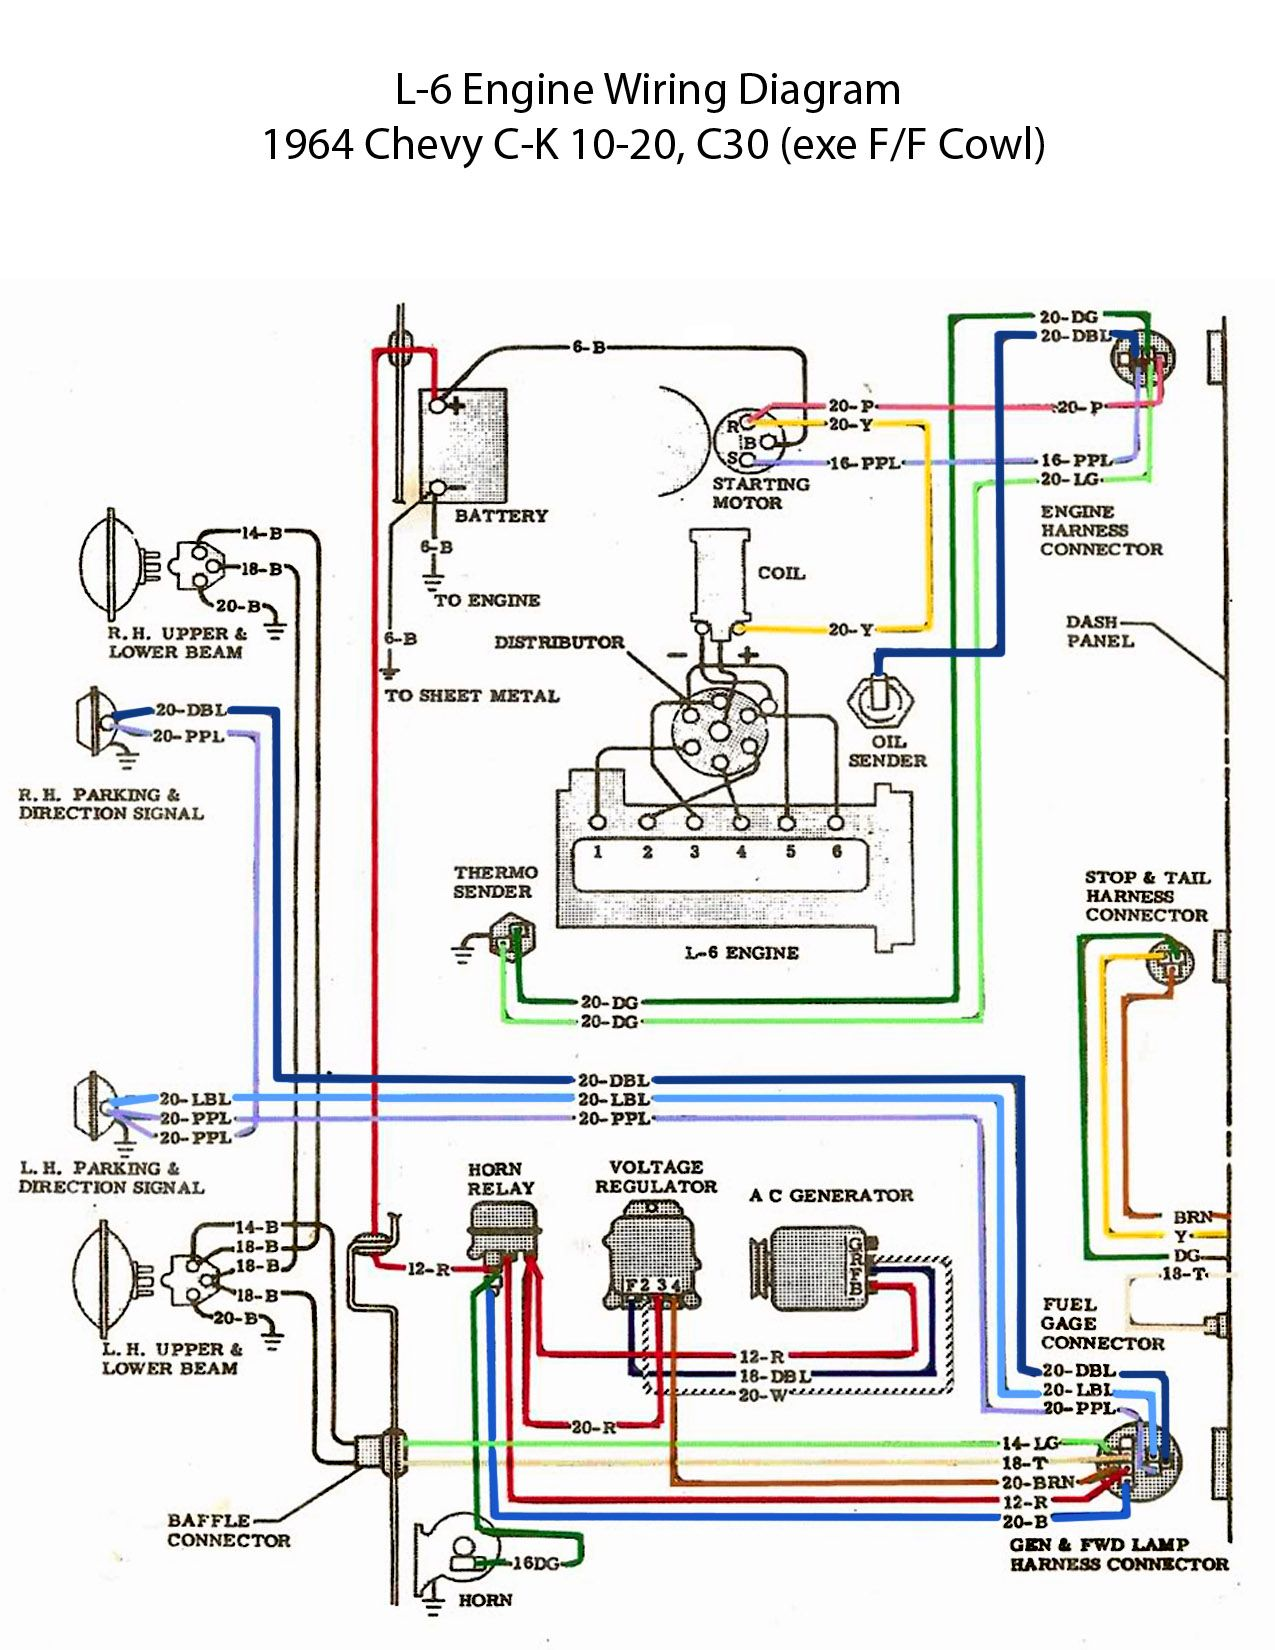 hight resolution of electric l 6 engine wiring diagram 60s chevy c10 wiring rh pinterest com chevy ignition switch wiring diagram 93 chevy truck wiring diagram